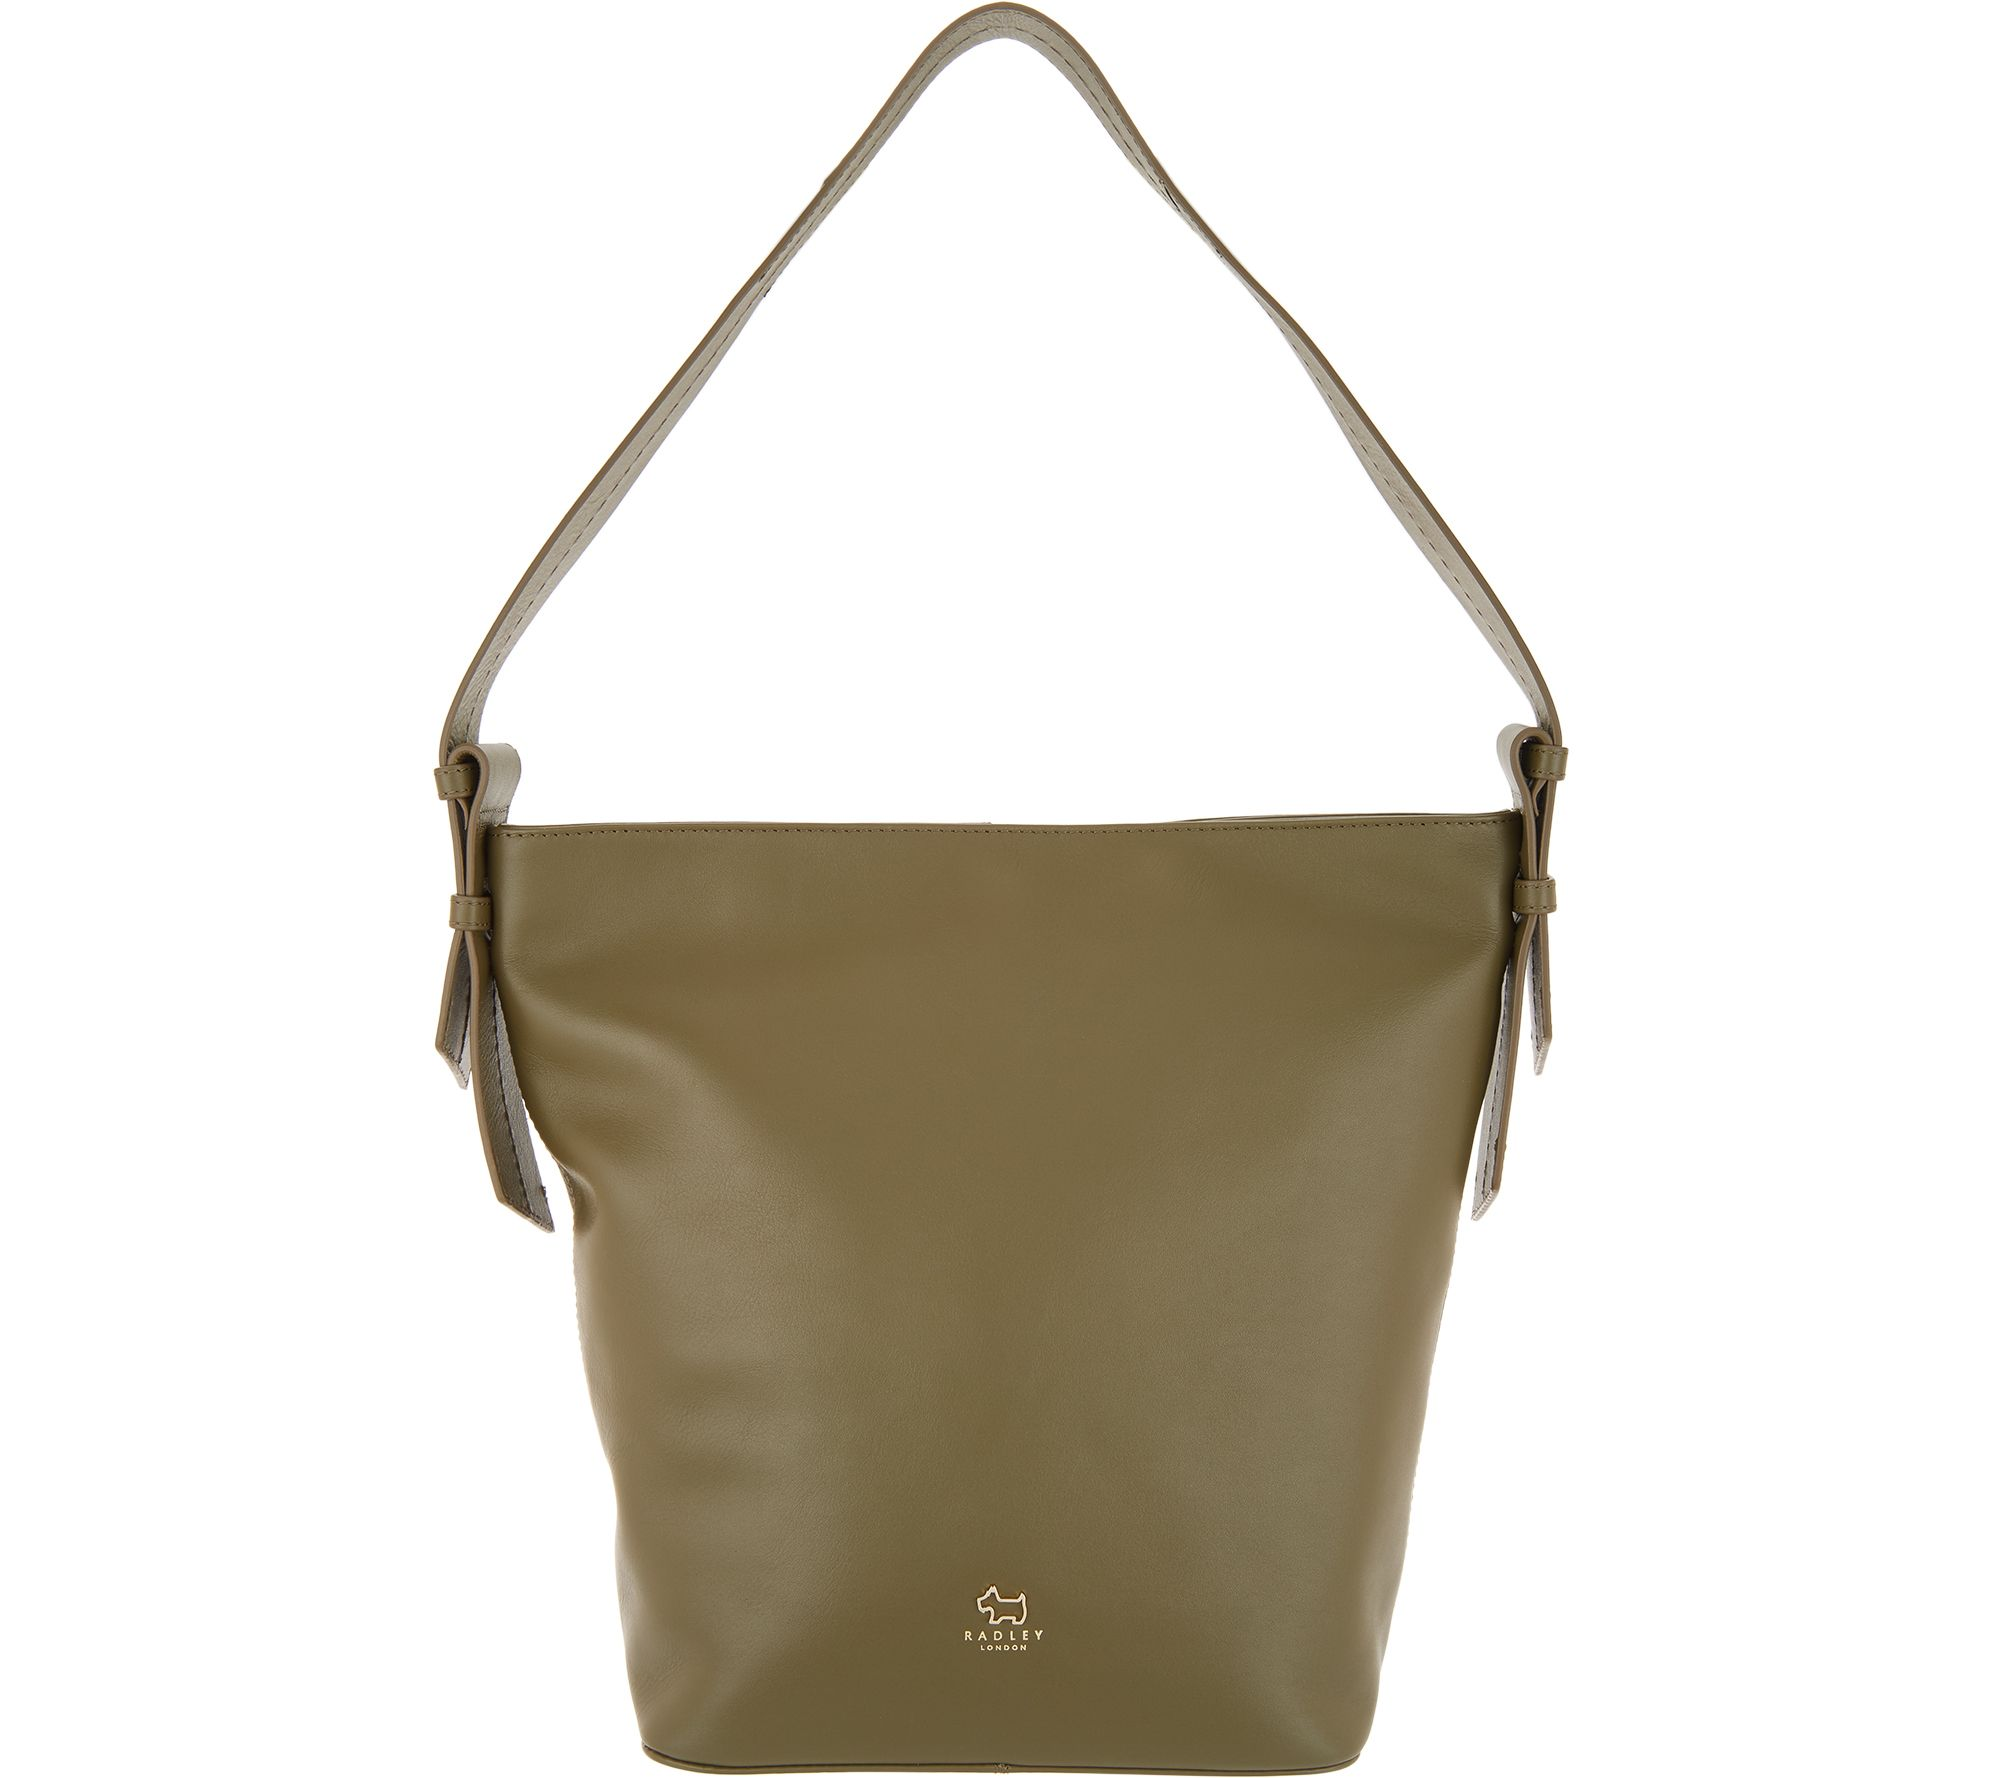 Radley London Finch Street Large Bucket Hobo Bag Cheap Authentic Outlet Clearance Store For Sale TqnsExV